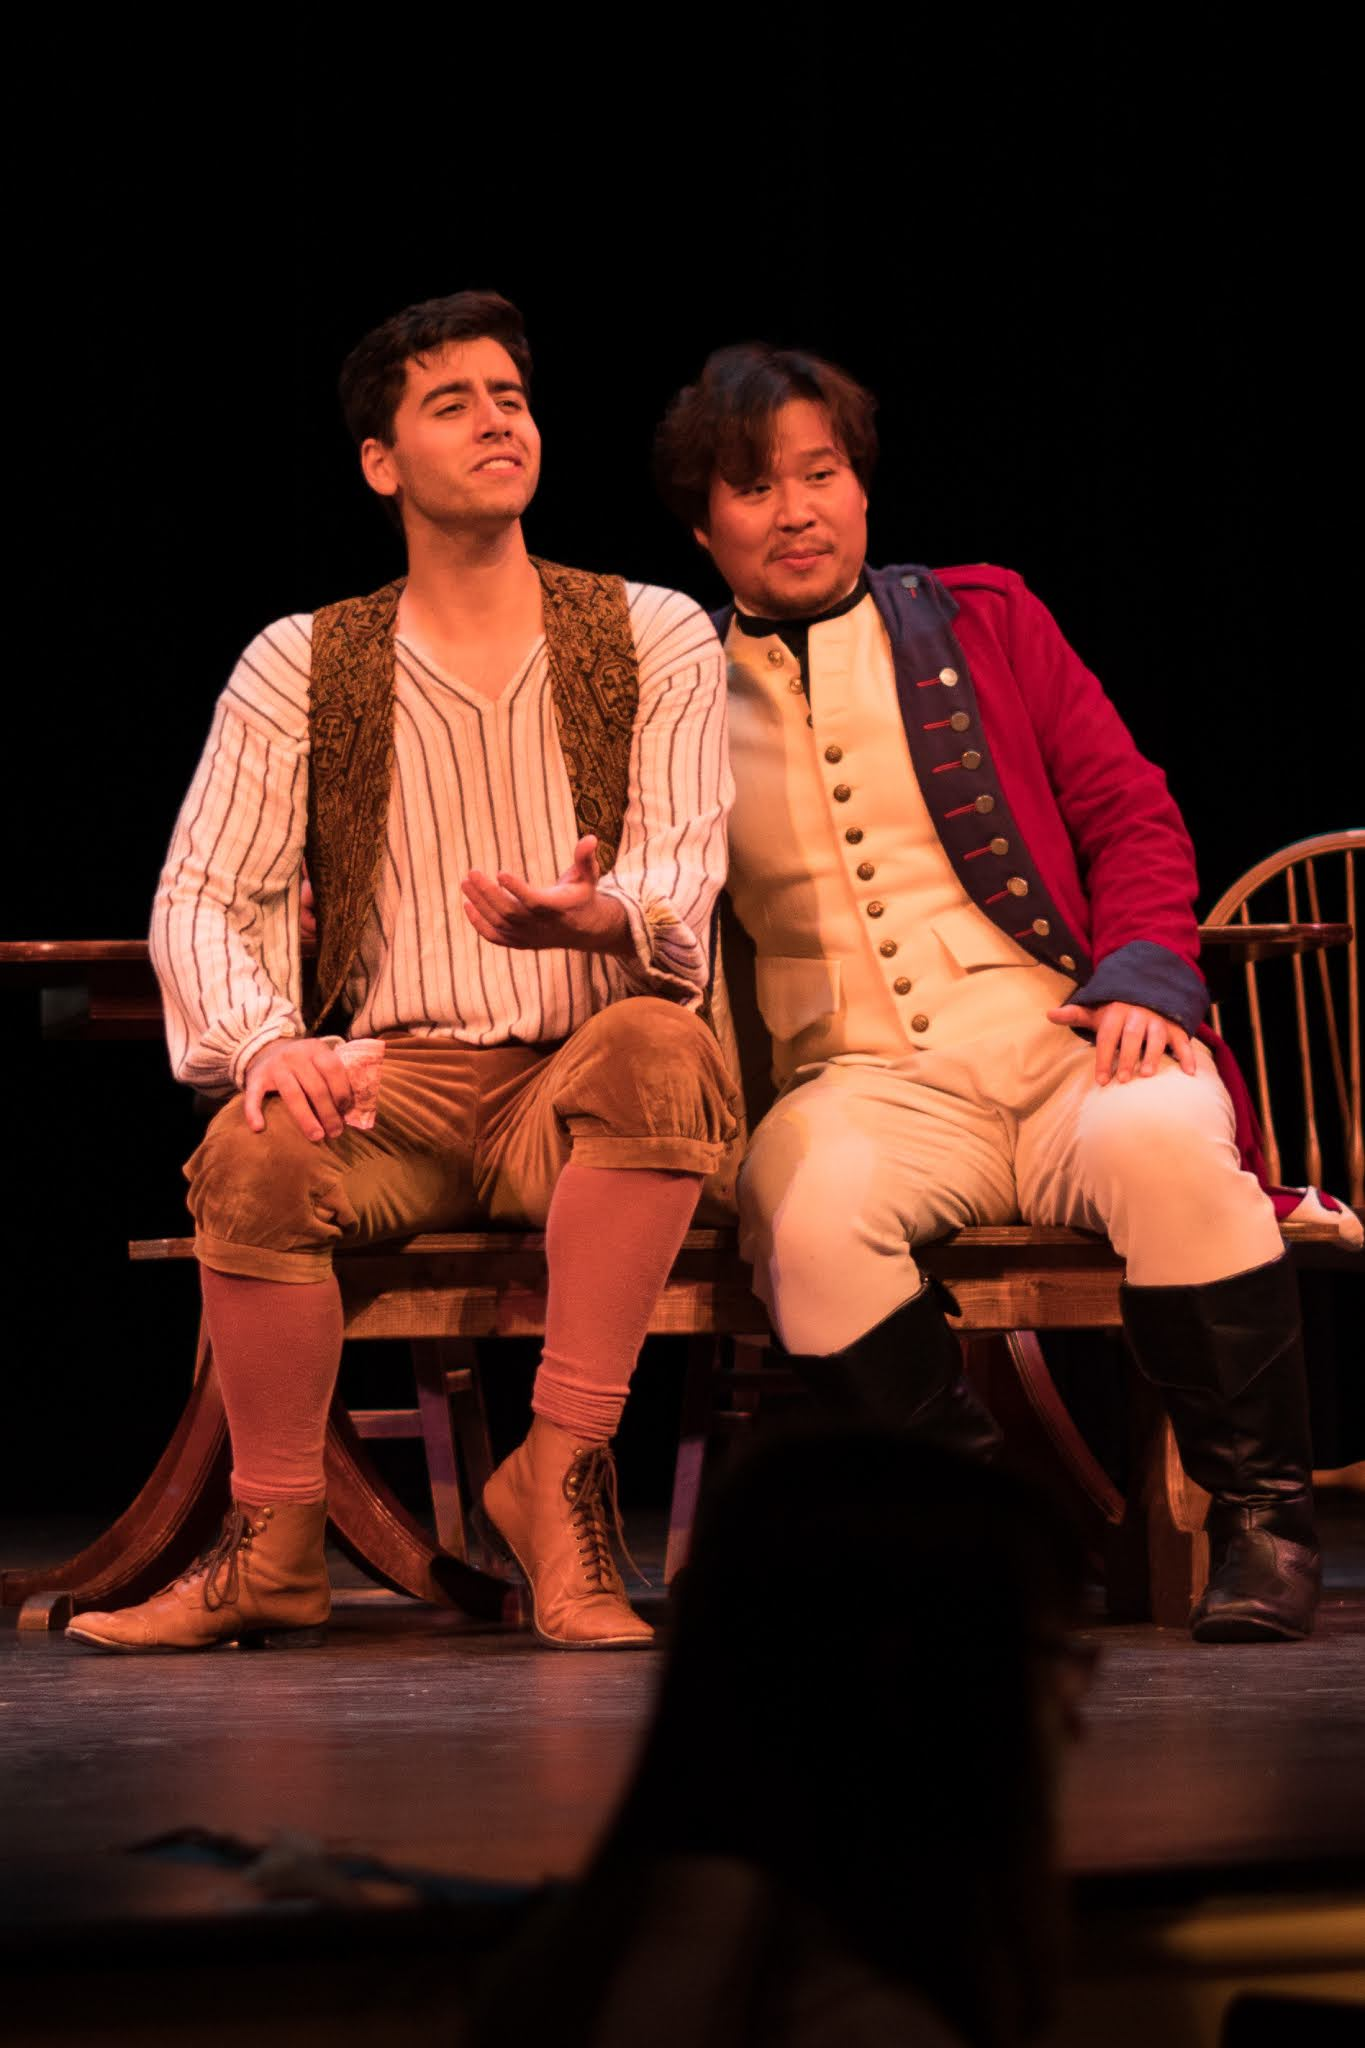 IN REVIEW: tenor JORDAN COSTA as Nemorino (left) and baritone SUCHAN KIM as Belcore (right) in the Sapphire Cast of Opera in Williamsburg's September 2021 production of Gaetano Donizetti's L'ELISIR D'AMORE [Photograph © by Diego Valdez; used with permission]